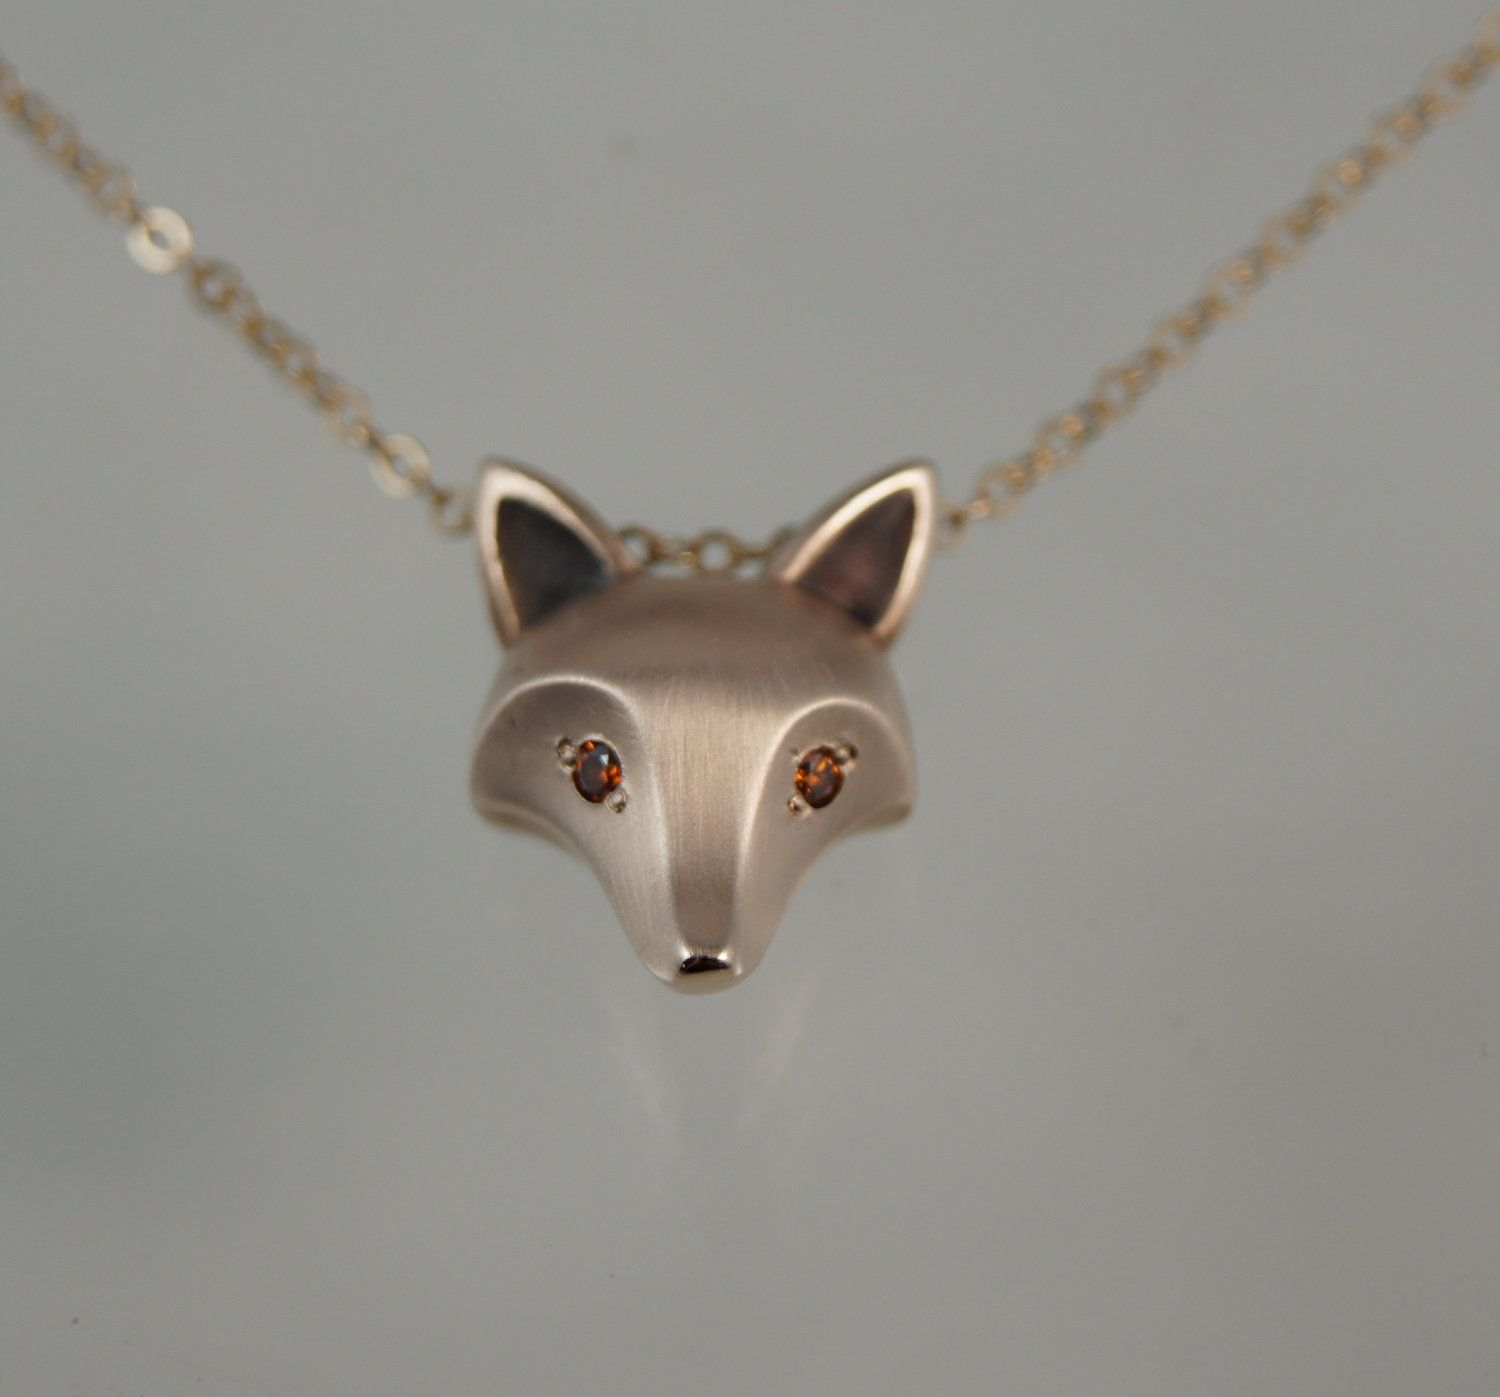 Fox Pendant With Orange Diamond Eyes, Gold Filled Chain $13000,